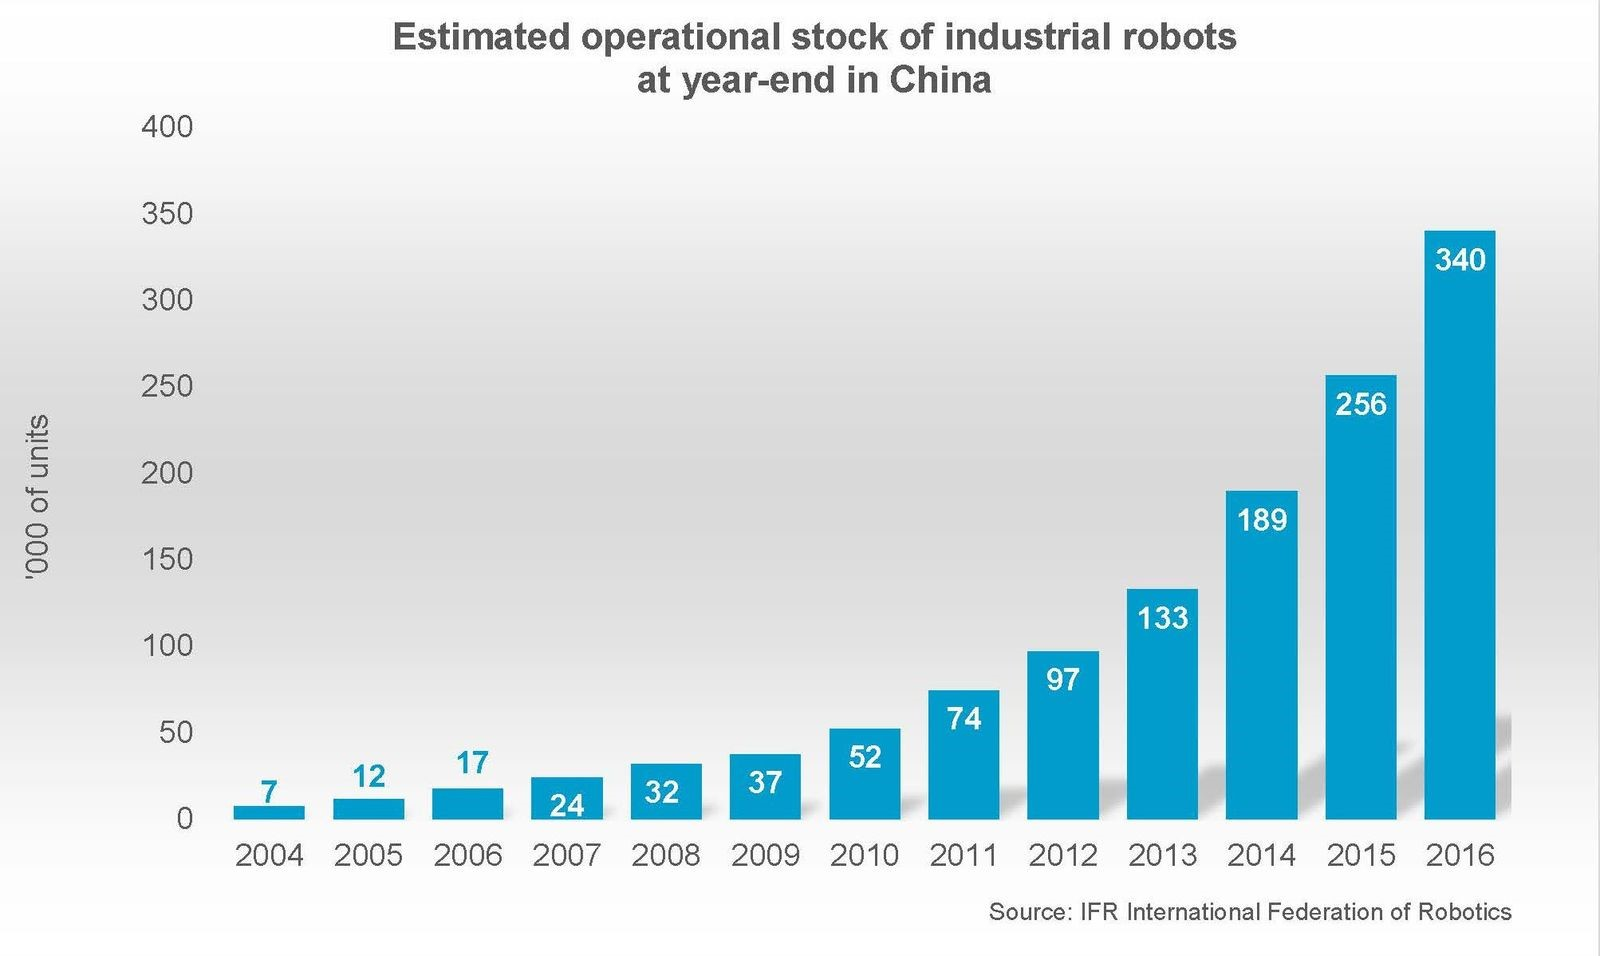 When it comes to factory automation, China is way ahead of the game. In fact, the demand for robots in China is more than twice as high as any other country.